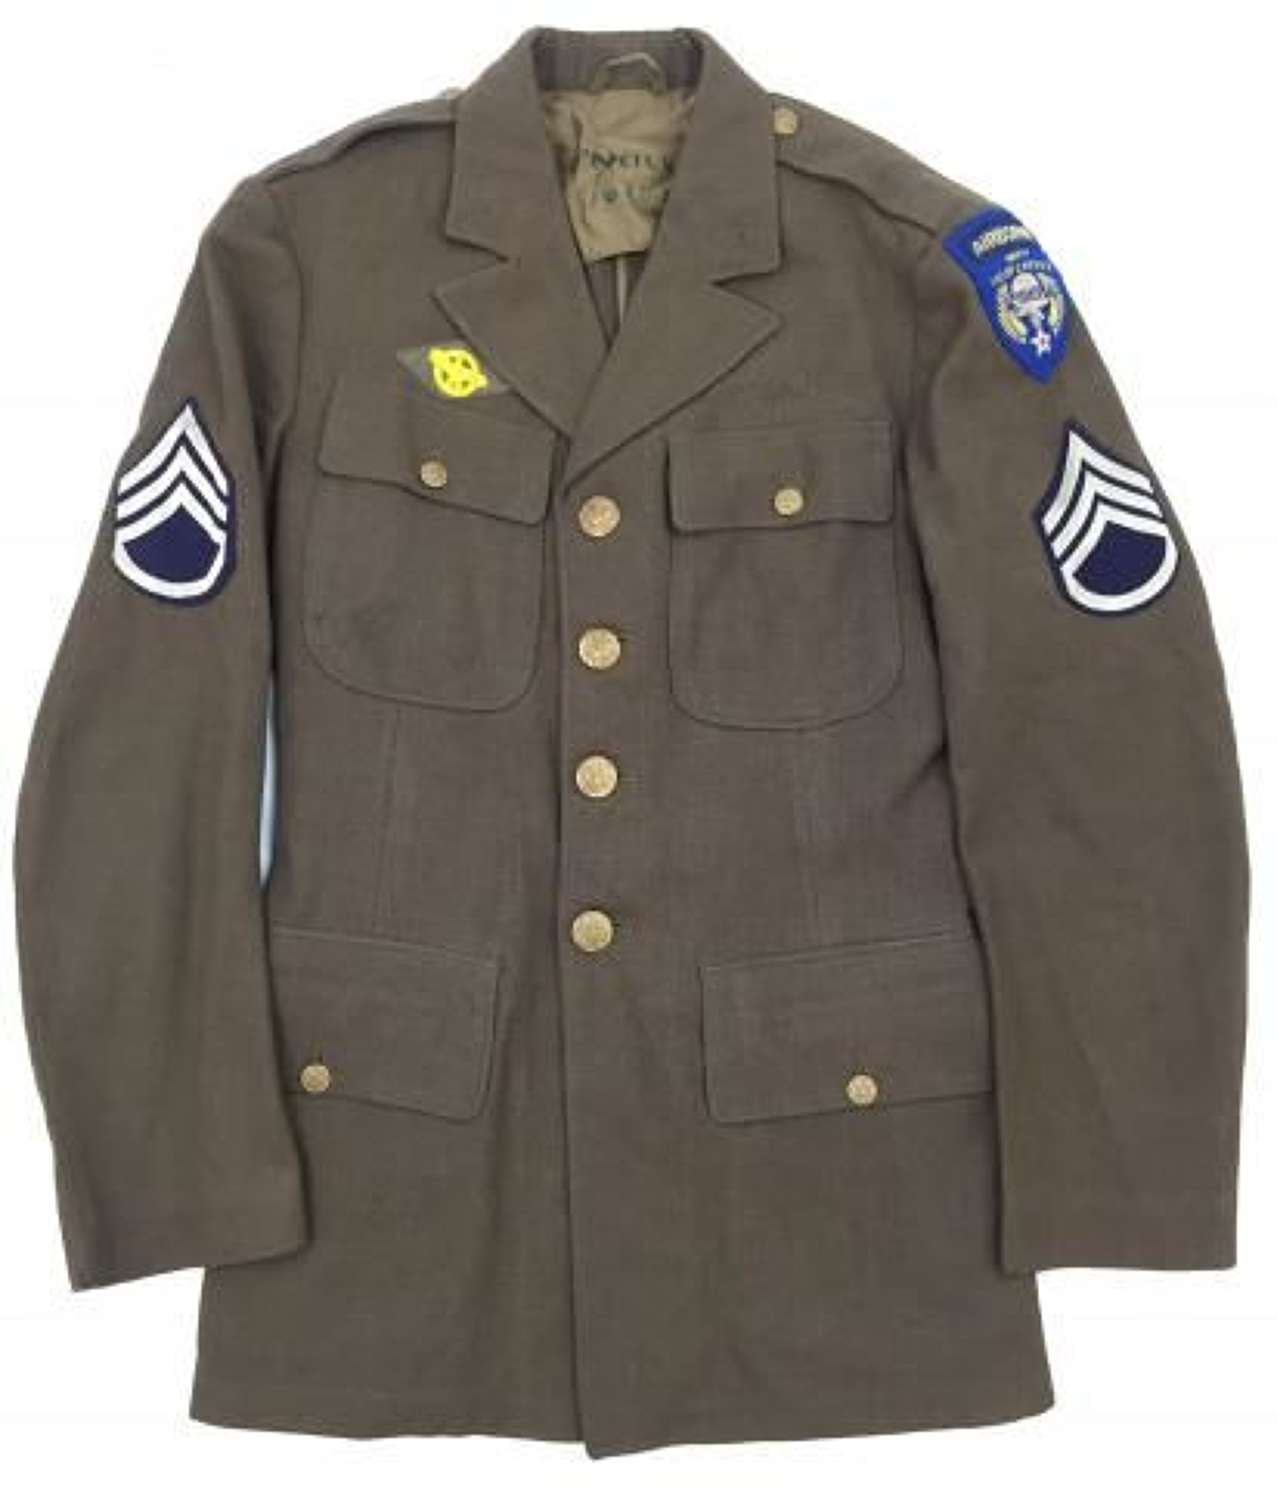 Original 1940 Dated US Enlisted Men's Tunic Troop Carrier - Size 36L